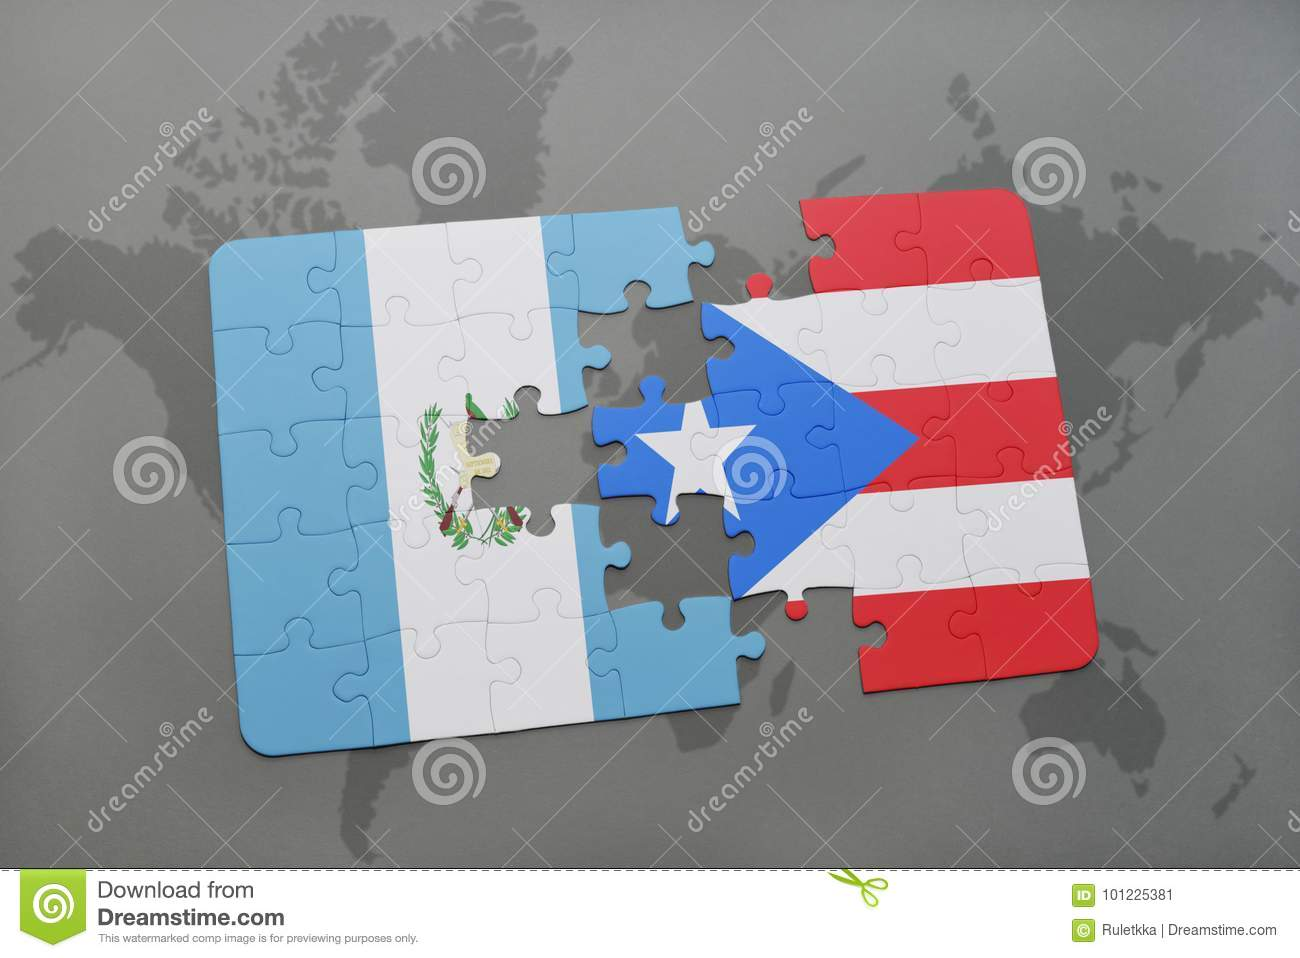 Puzzle With The National Flag Of Guatemala And Puerto Rico On A ...